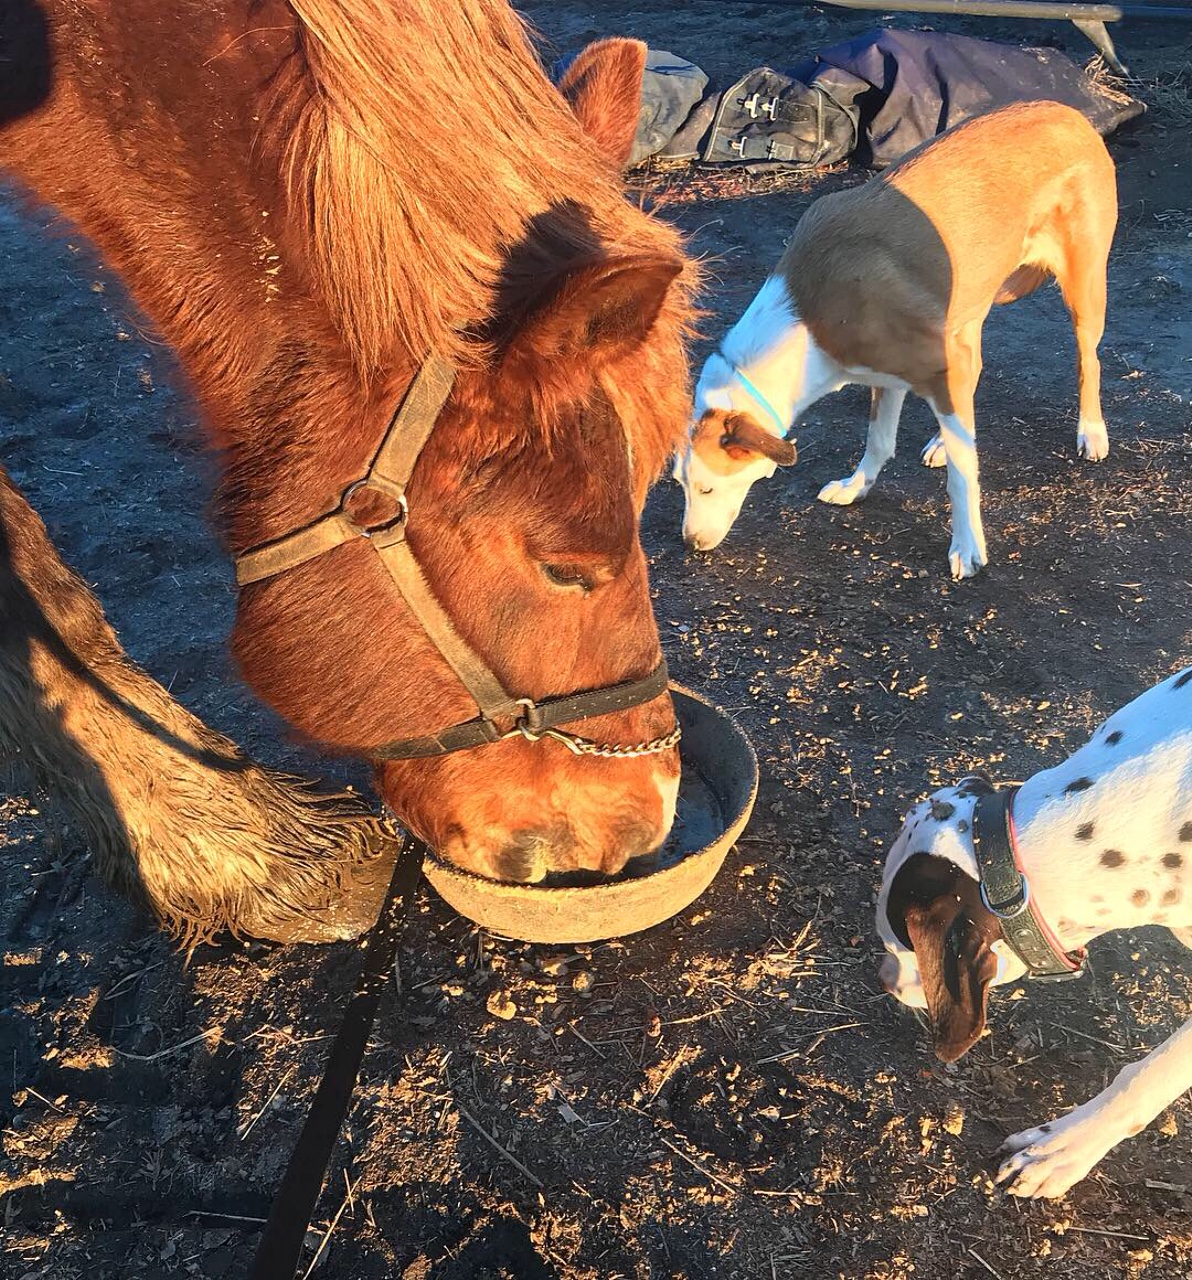 Eating dinner with his farm pup friends….